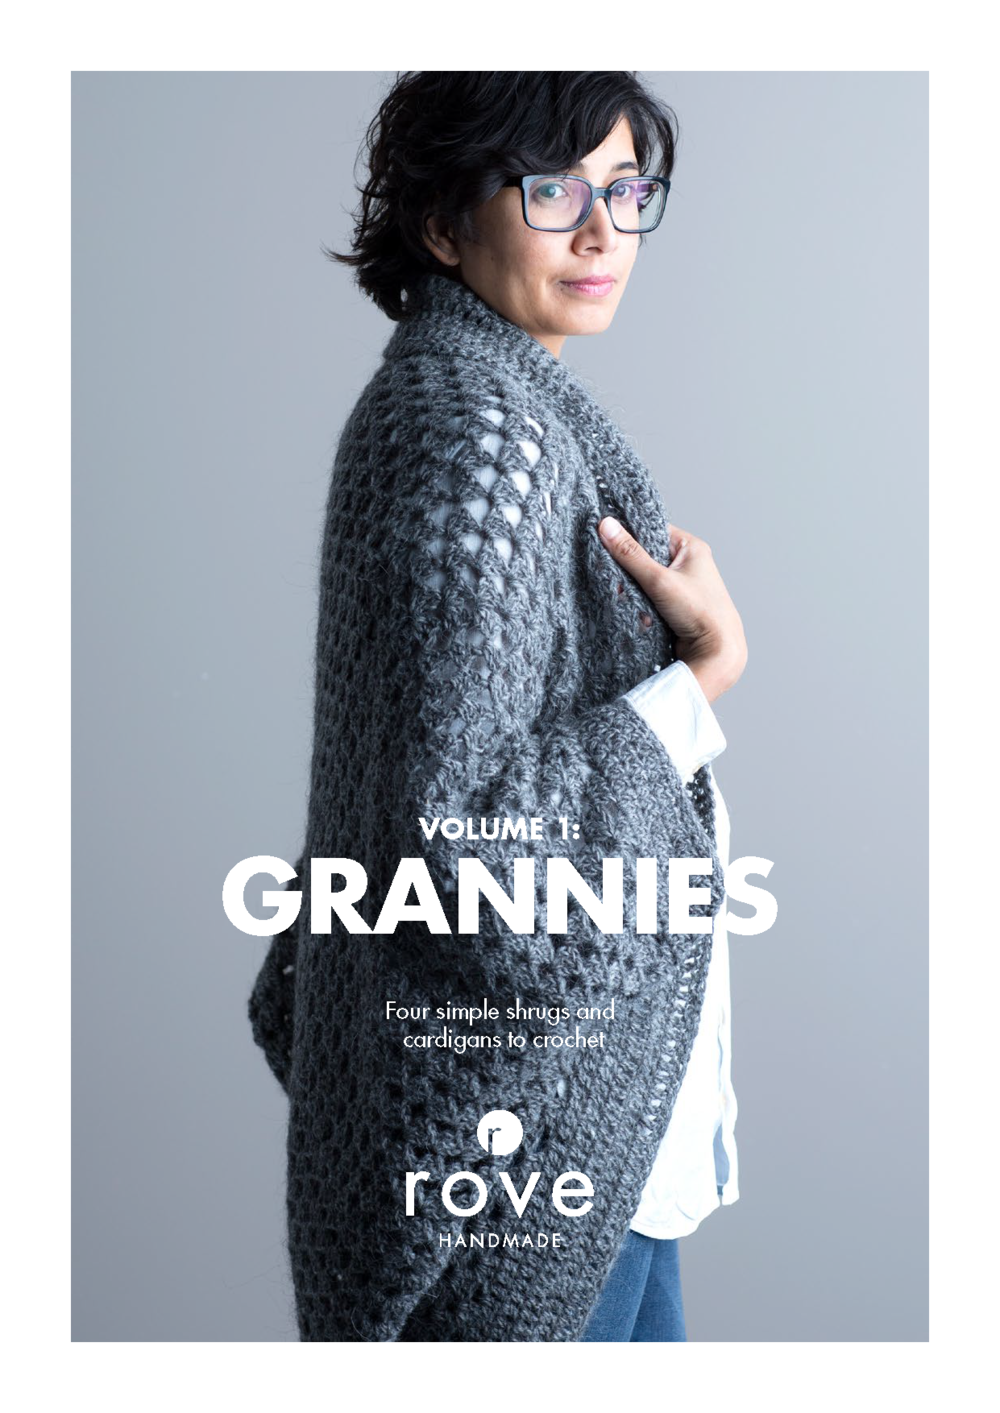 Rove_Volume1_Grannies_final_v1 1.png